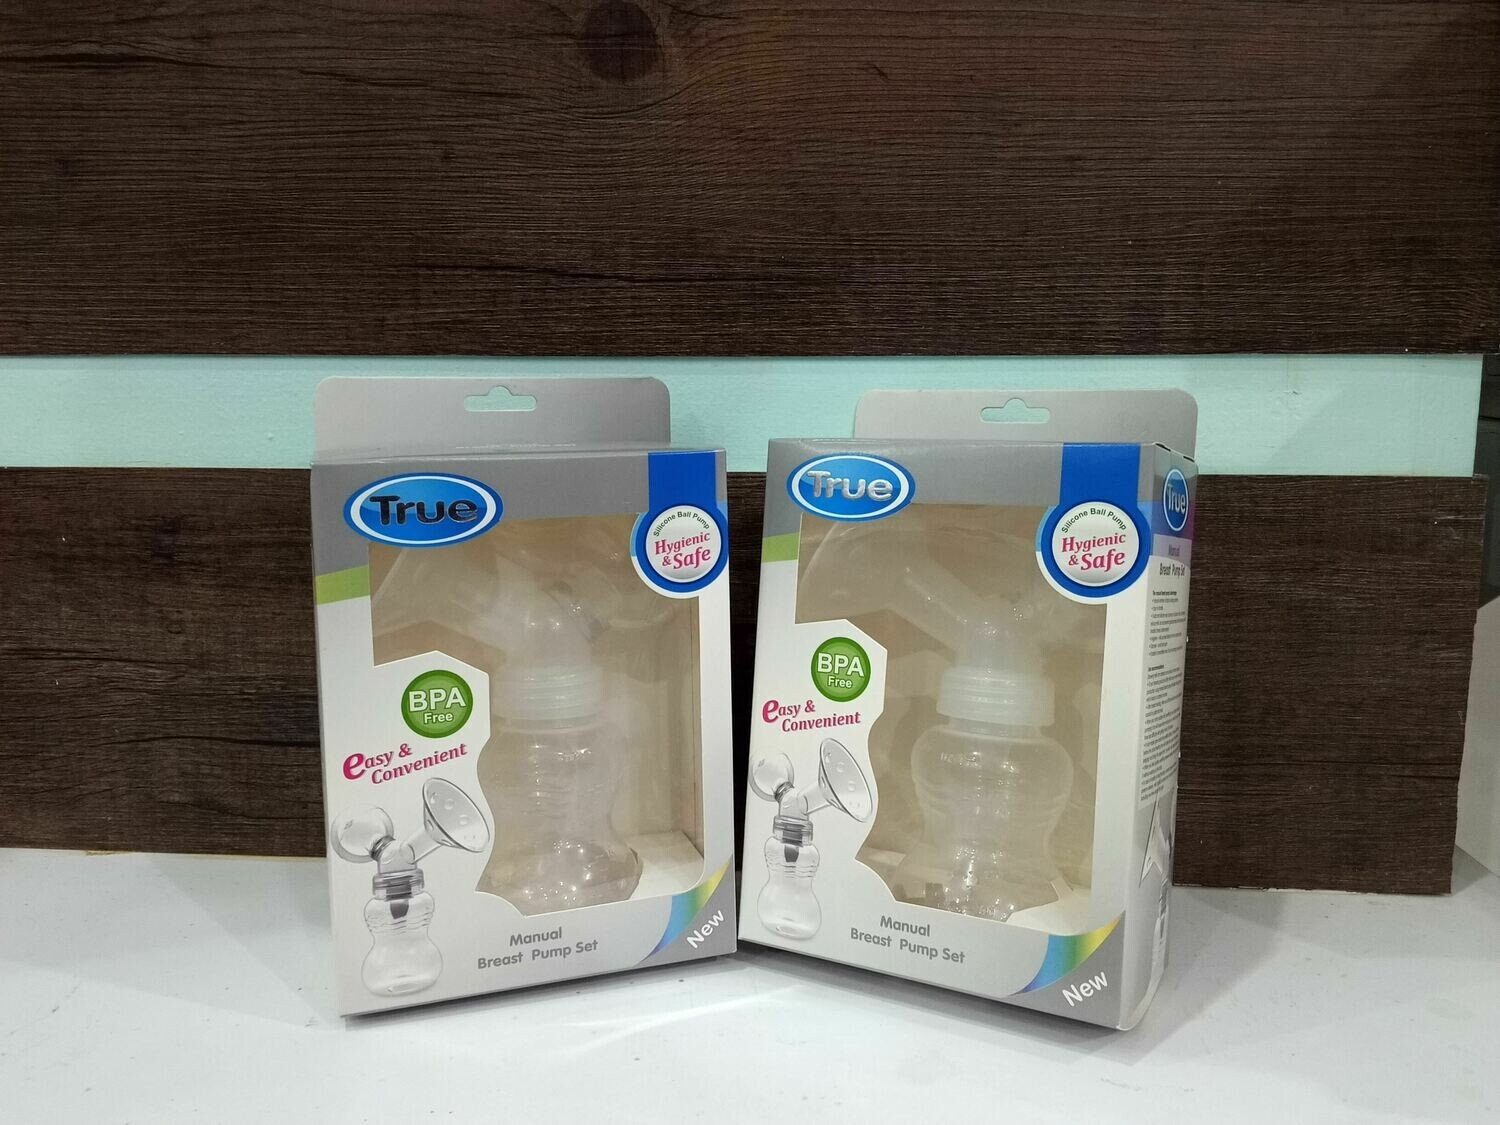 True manual breast pump